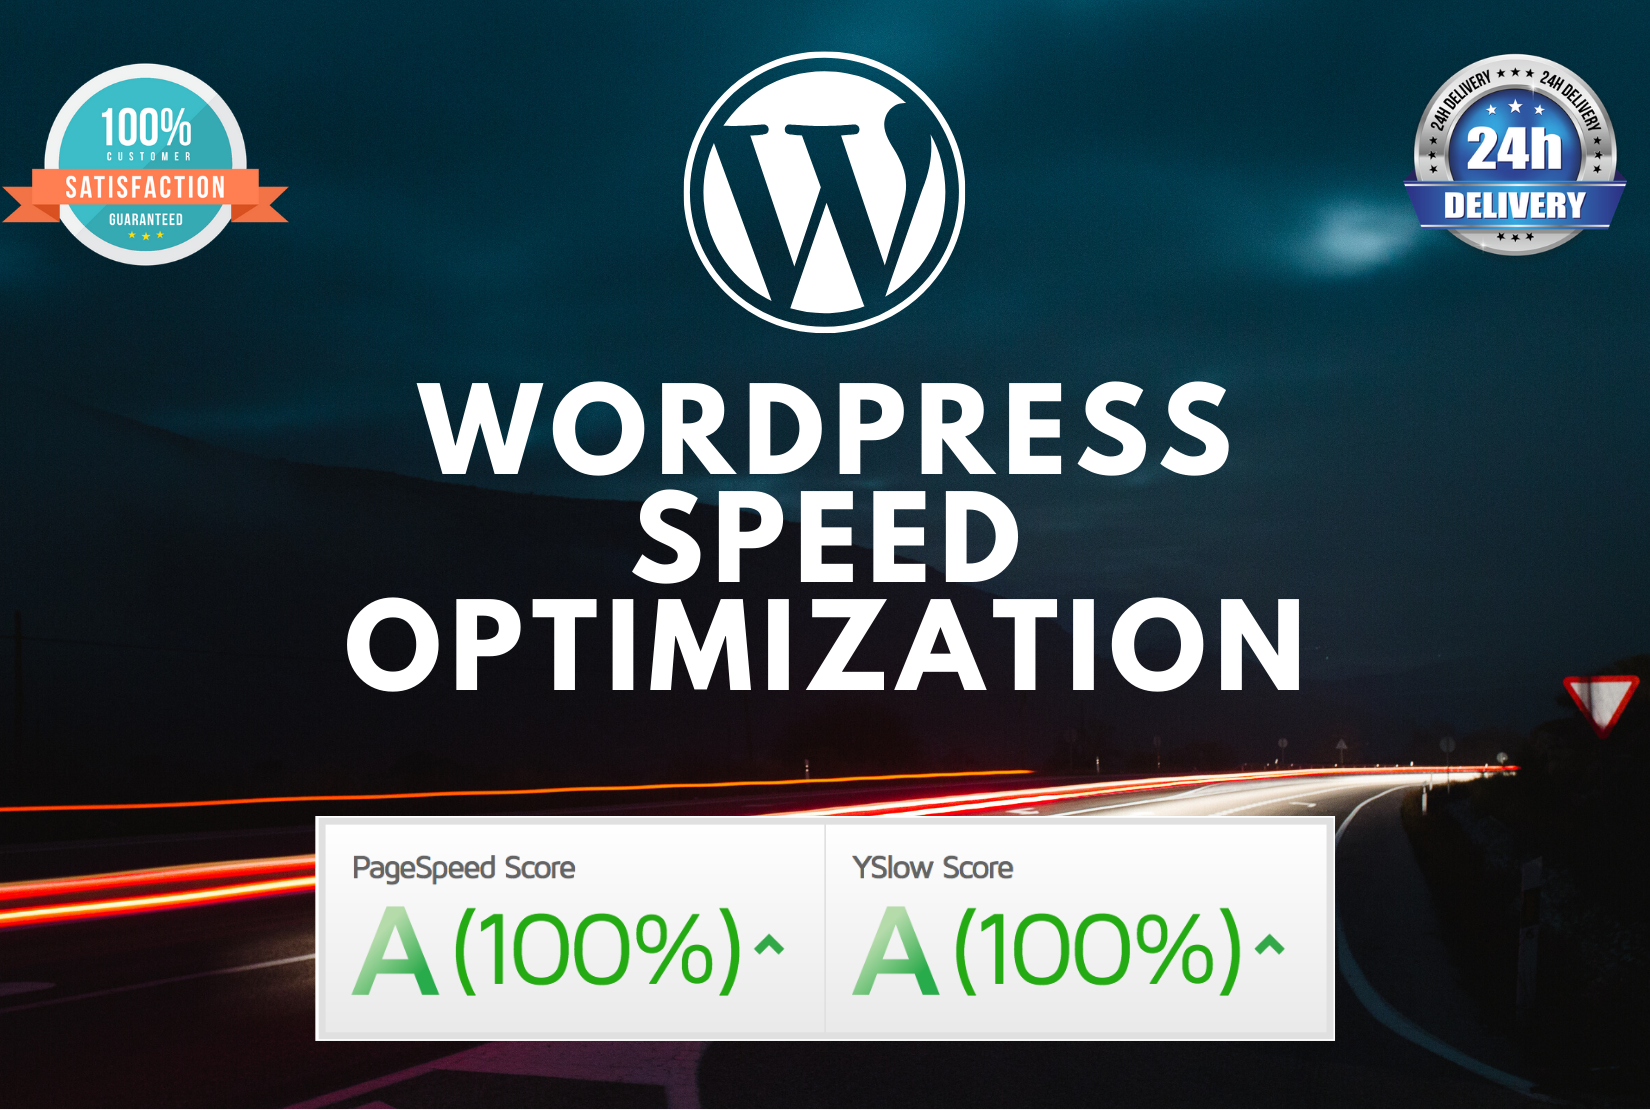 I will do wordpress speed optimization and increase gtmetrix page speed